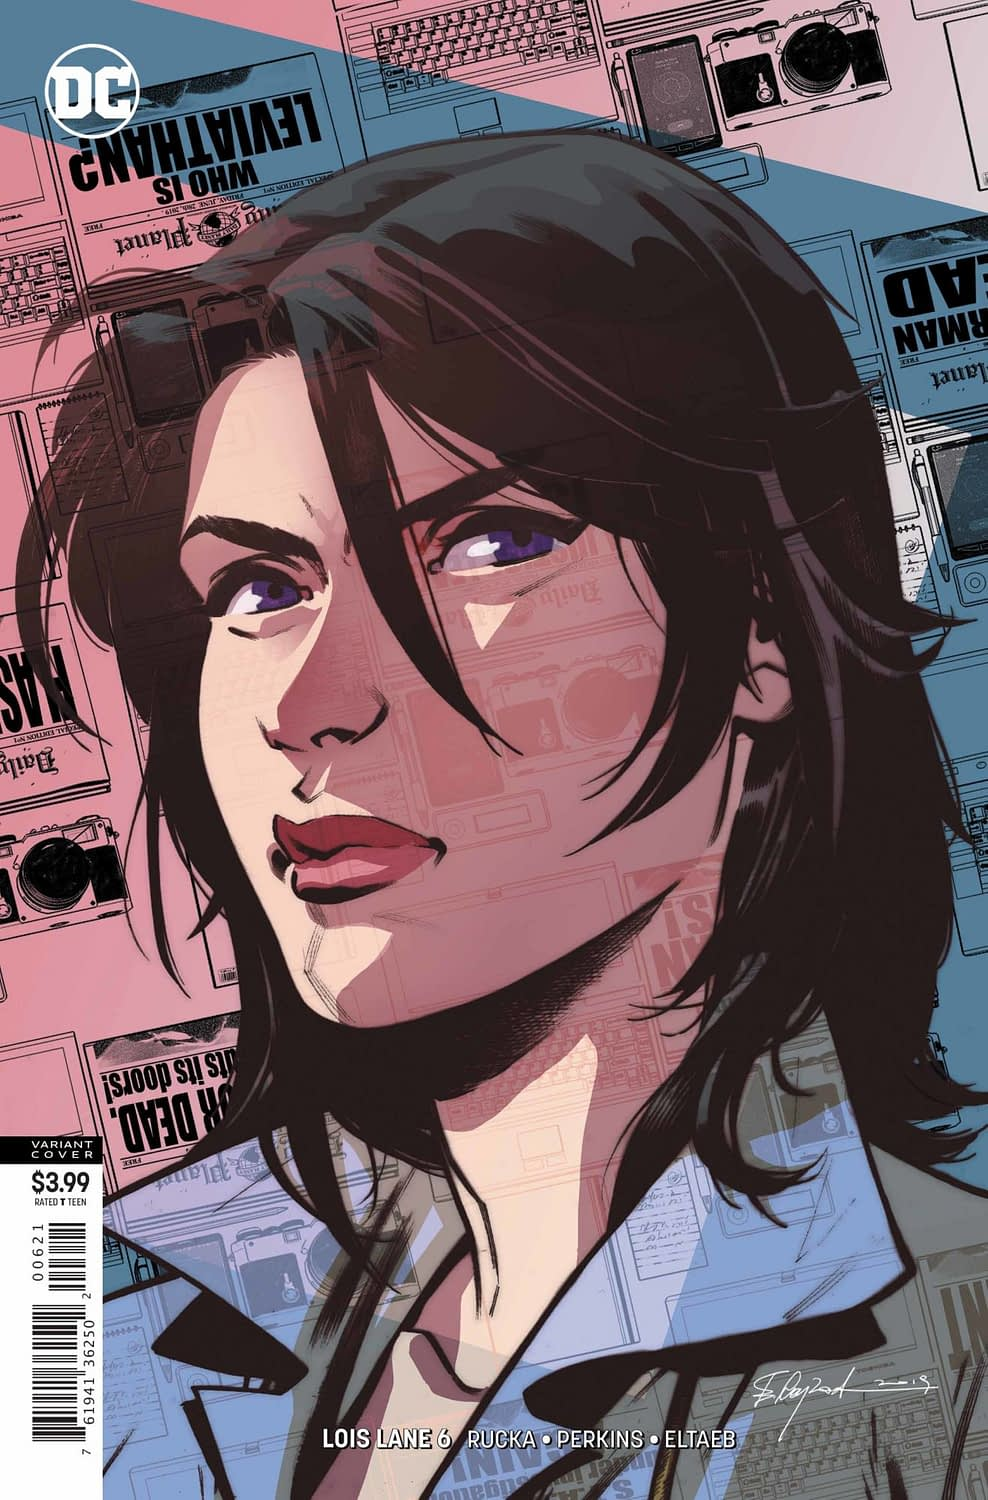 It's Time for Lois Lane to Put Her Daddy Issues Behind Her in Lois Lane #6 [Preview]